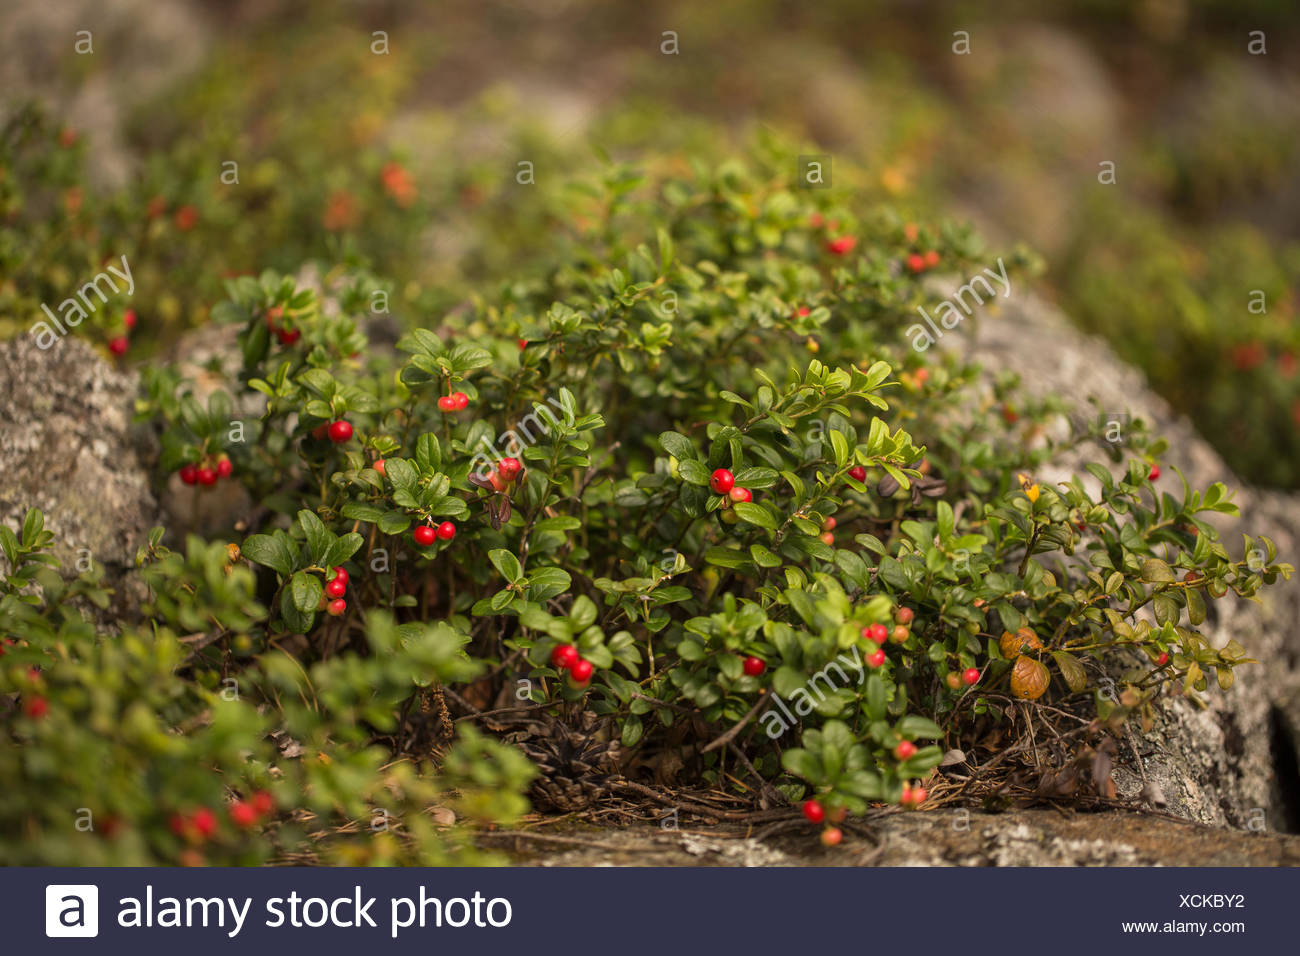 Lingonberry leaves: application in traditional medicine 71